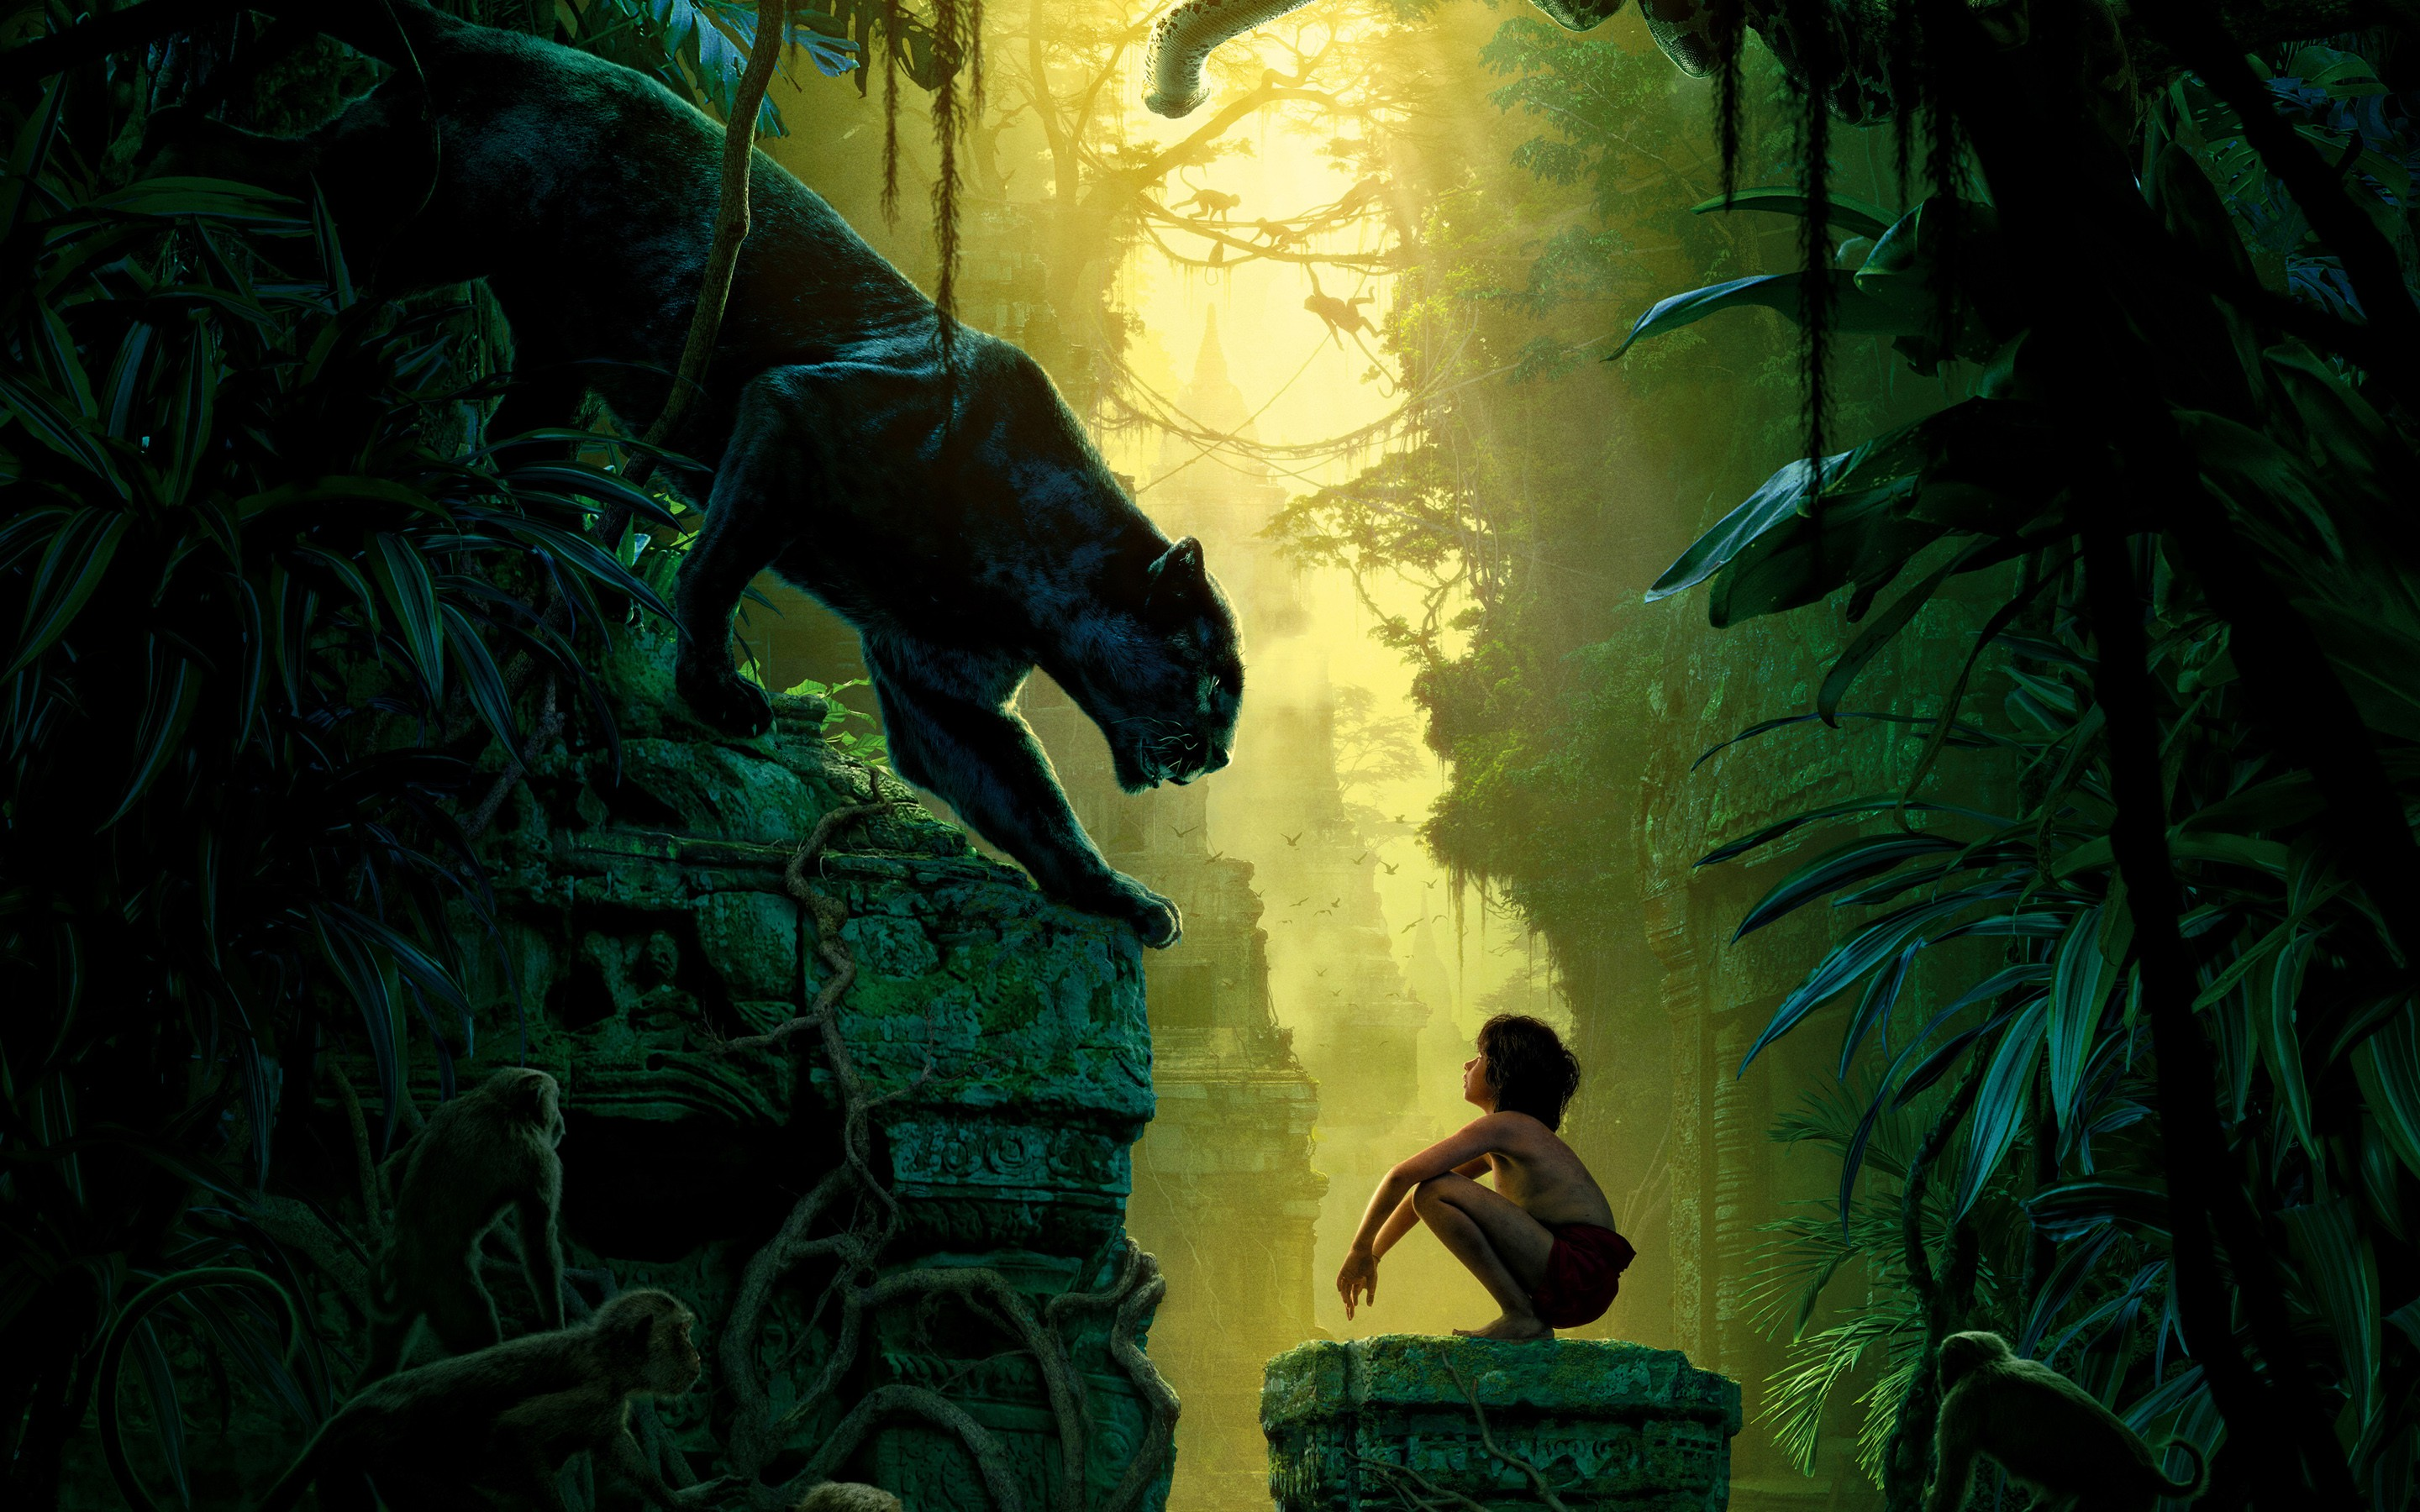 Cute Jungle Wallpaper The Jungle Book 2016 Movie Wallpapers Hd Wallpapers Id